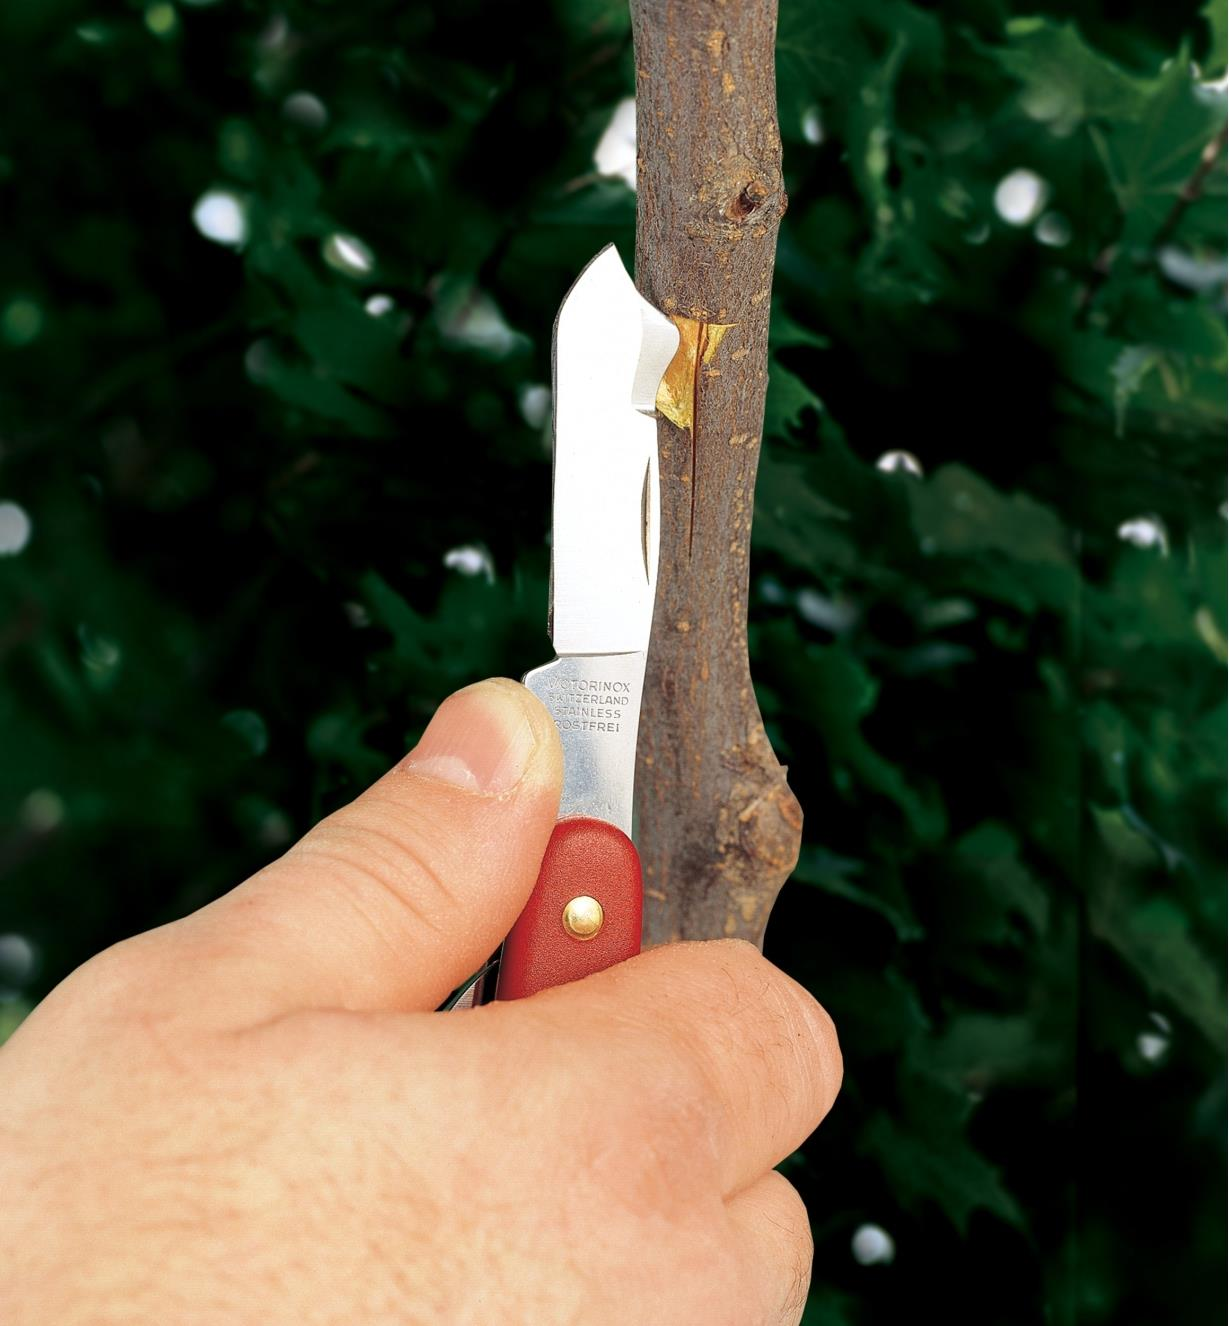 BL130 - Budding and Grafting Knife